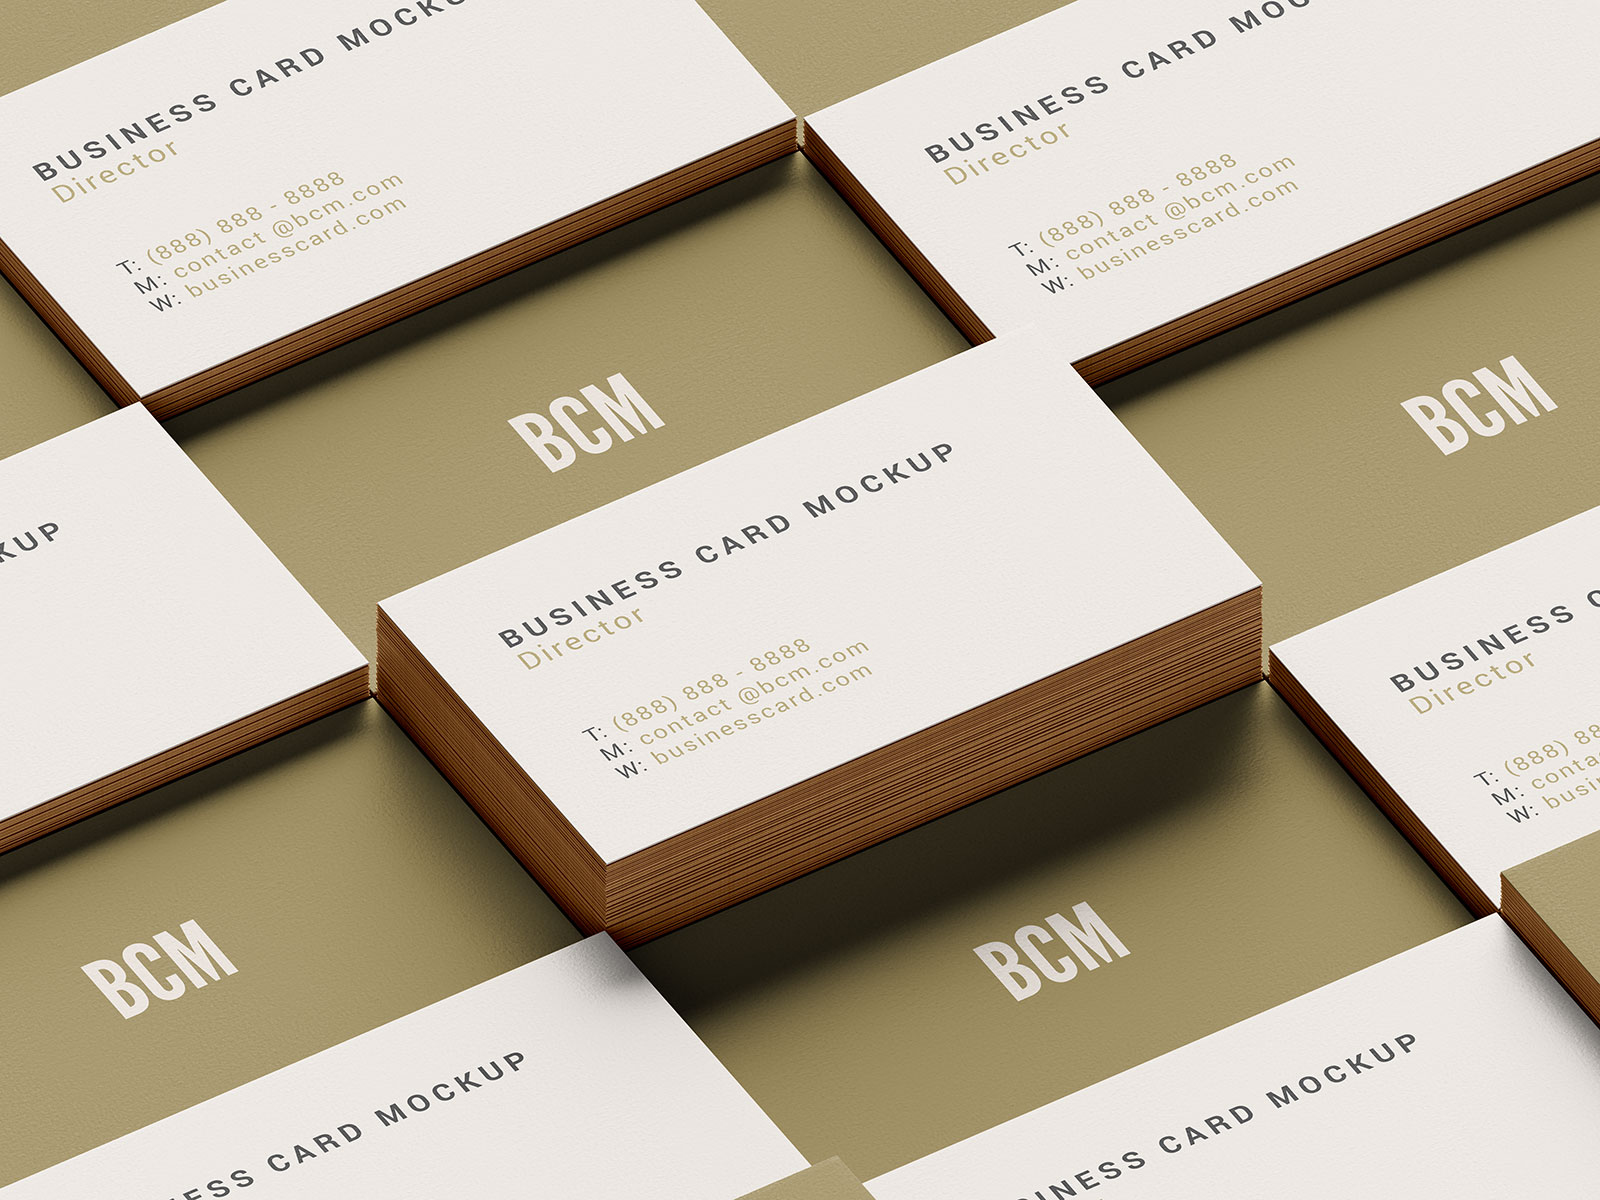 Free-Grid-Style-Business-Card-Mockup-PSD-2